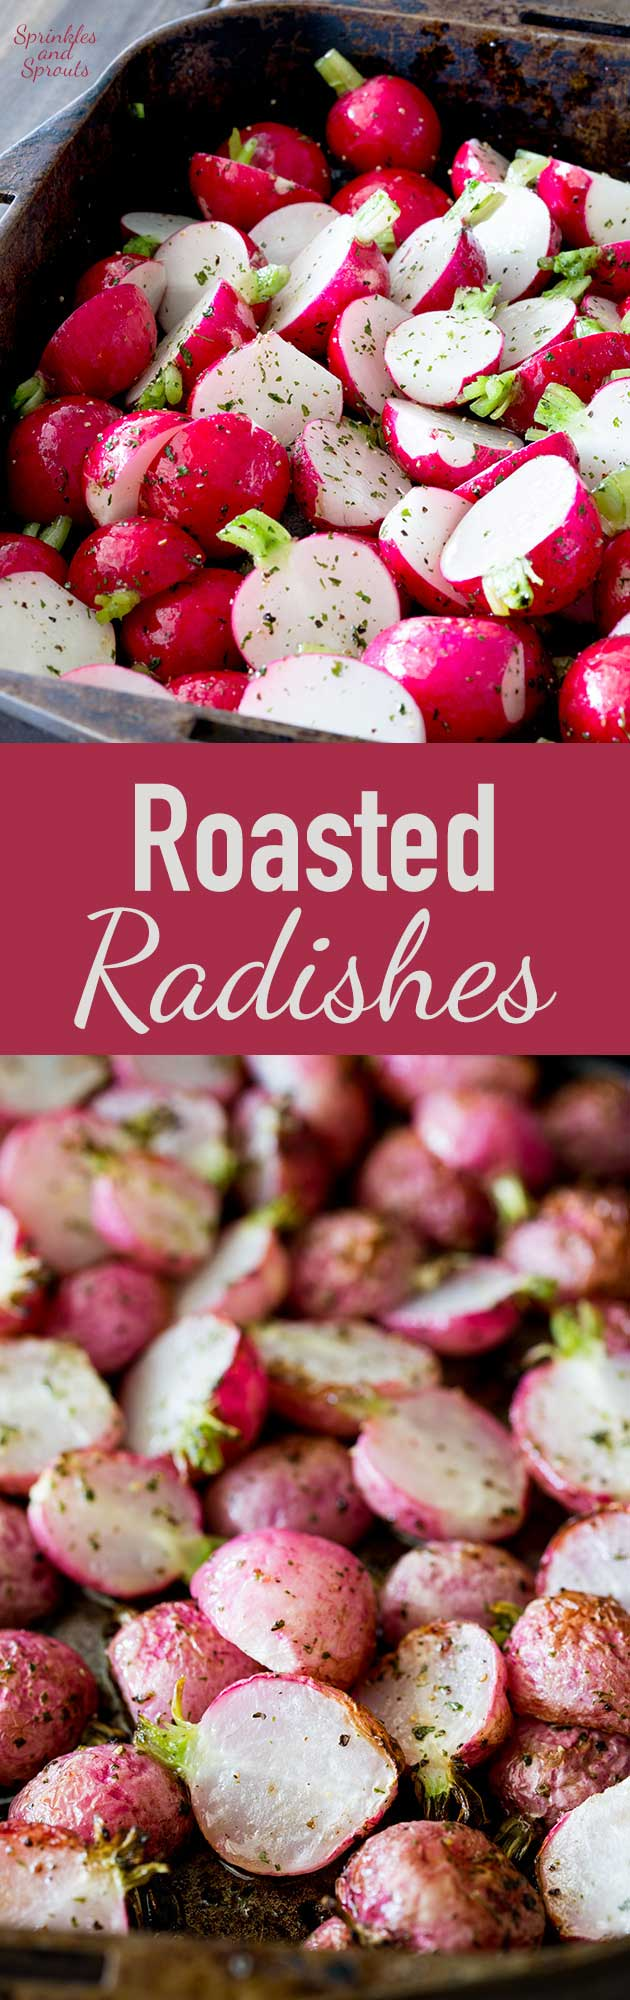 Roasted radishes are a wonderfully different roasted vegetable. They are perfect with fish or as a side dish with roast chicken. So different, so delicious and so simple!!! And look how beautiful they look!!!! | Sprinkles and Sprouts